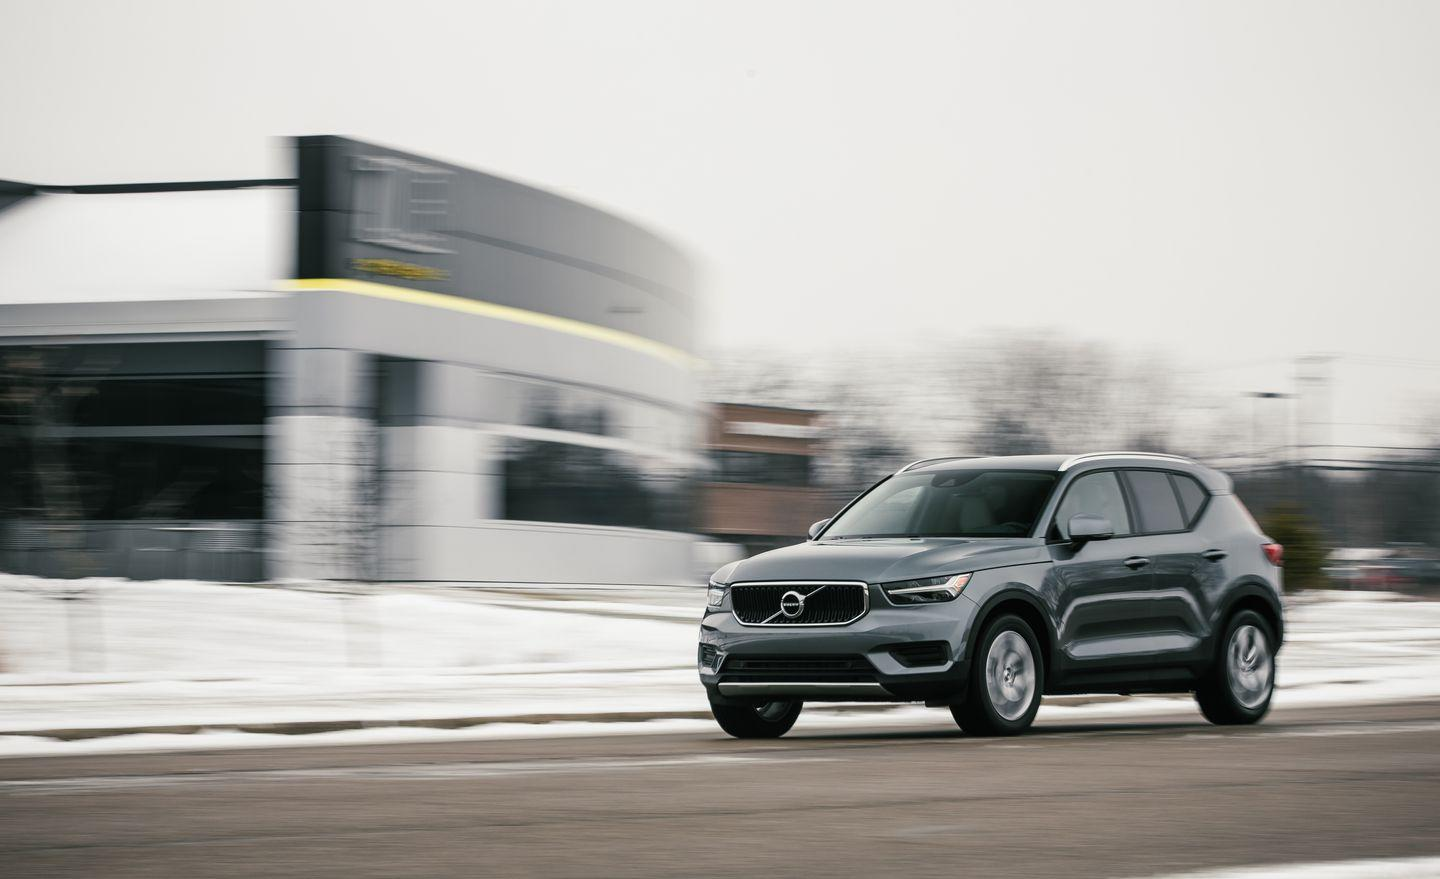 View Every Angle of the 2019 Volvo XC40 T4 in Photos